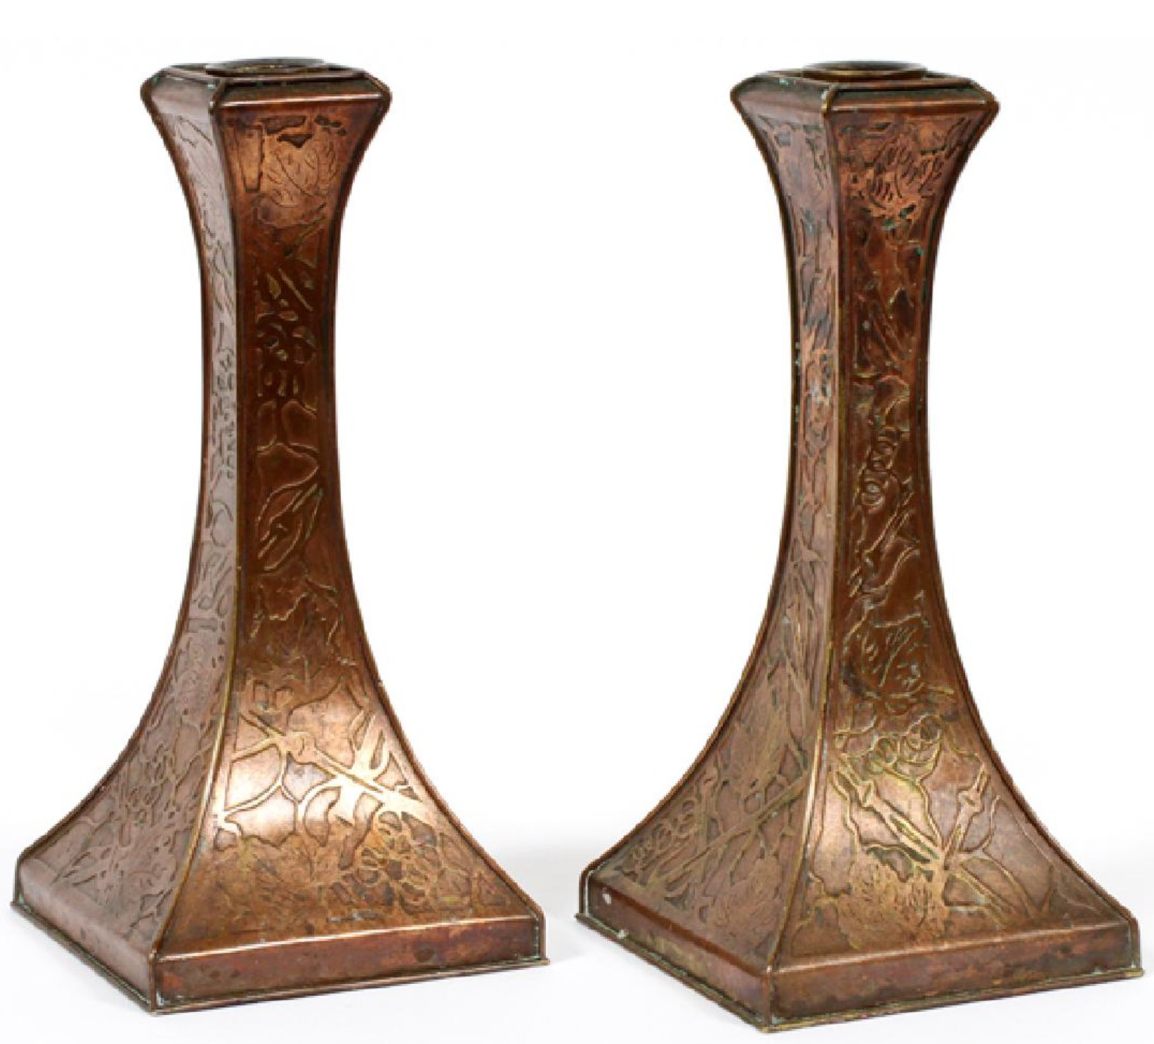 Copper Candlesticks Have With Images Copper Candle